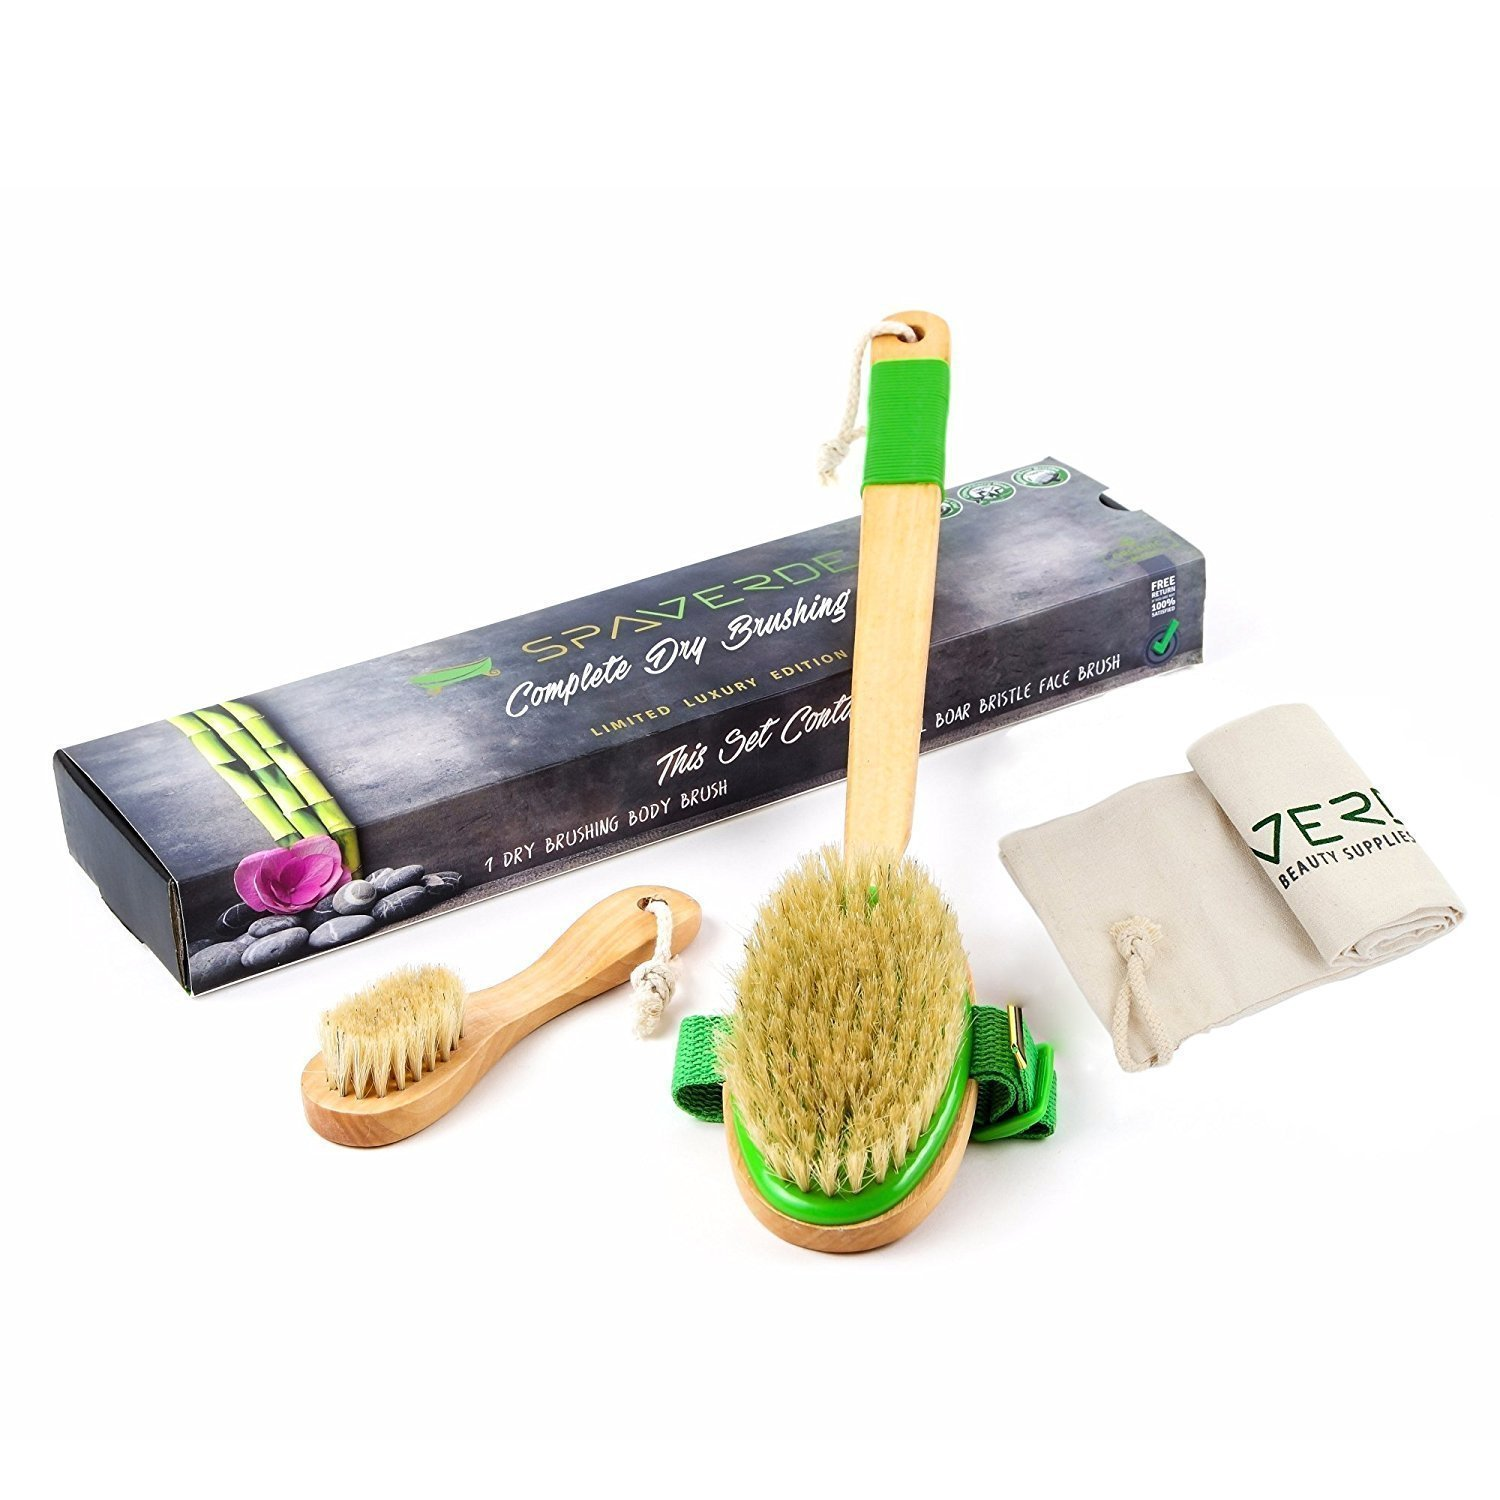 Dry Brushing Body Brush - Natural Boar Bristle Dry Brush Set for Body and Face Brushing - Skin Brush that Revitalizes and Rejuvenates - Aids Lymph Flow, Alleviates Cellulite and Eliminates Toxins SpaVerde MSKU-2